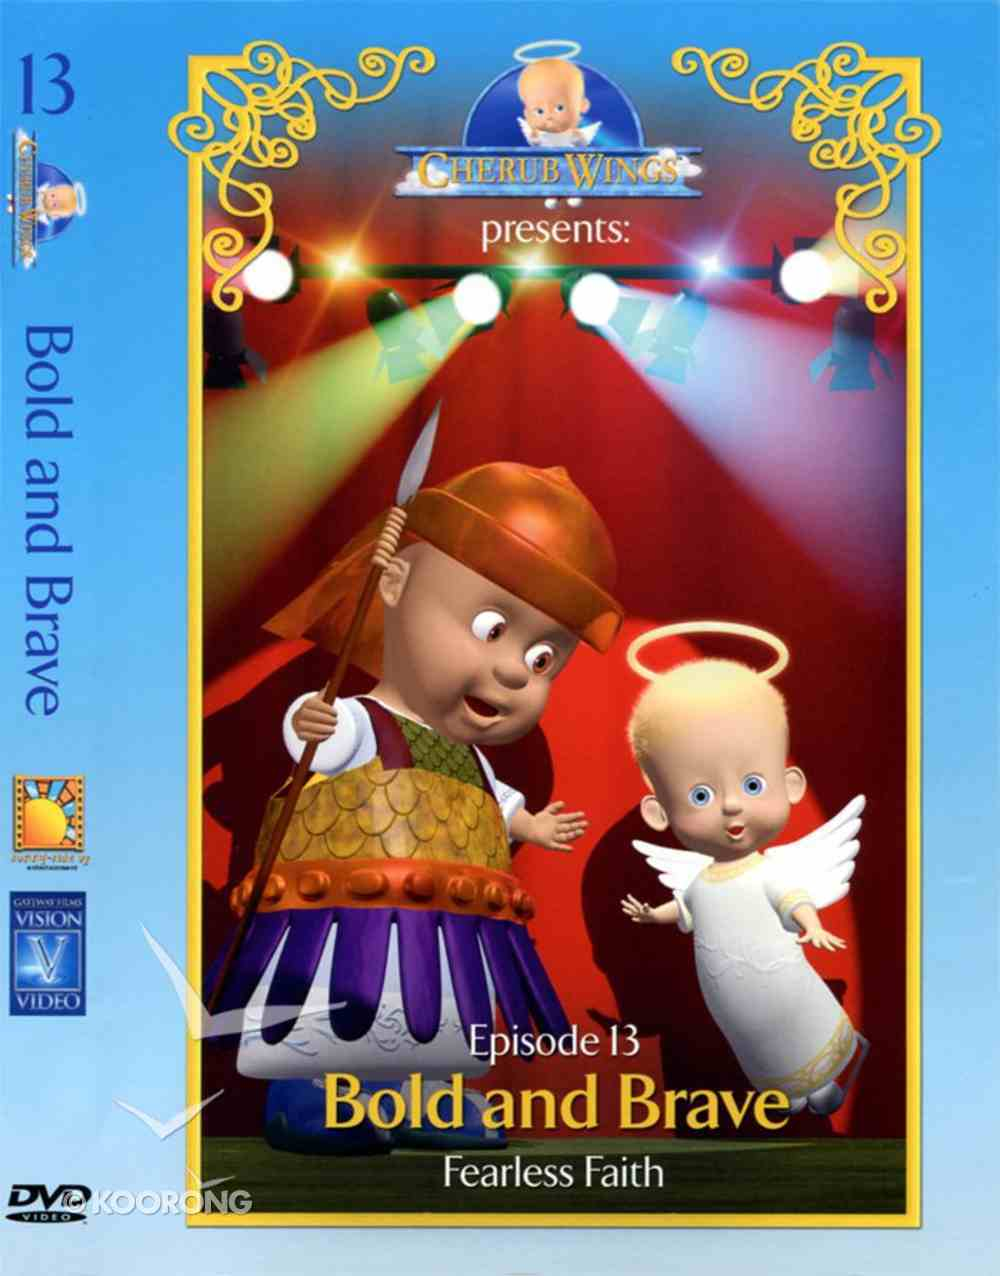 Bold and Brave (#13 in Cherub Wings (Dvd) Series) DVD